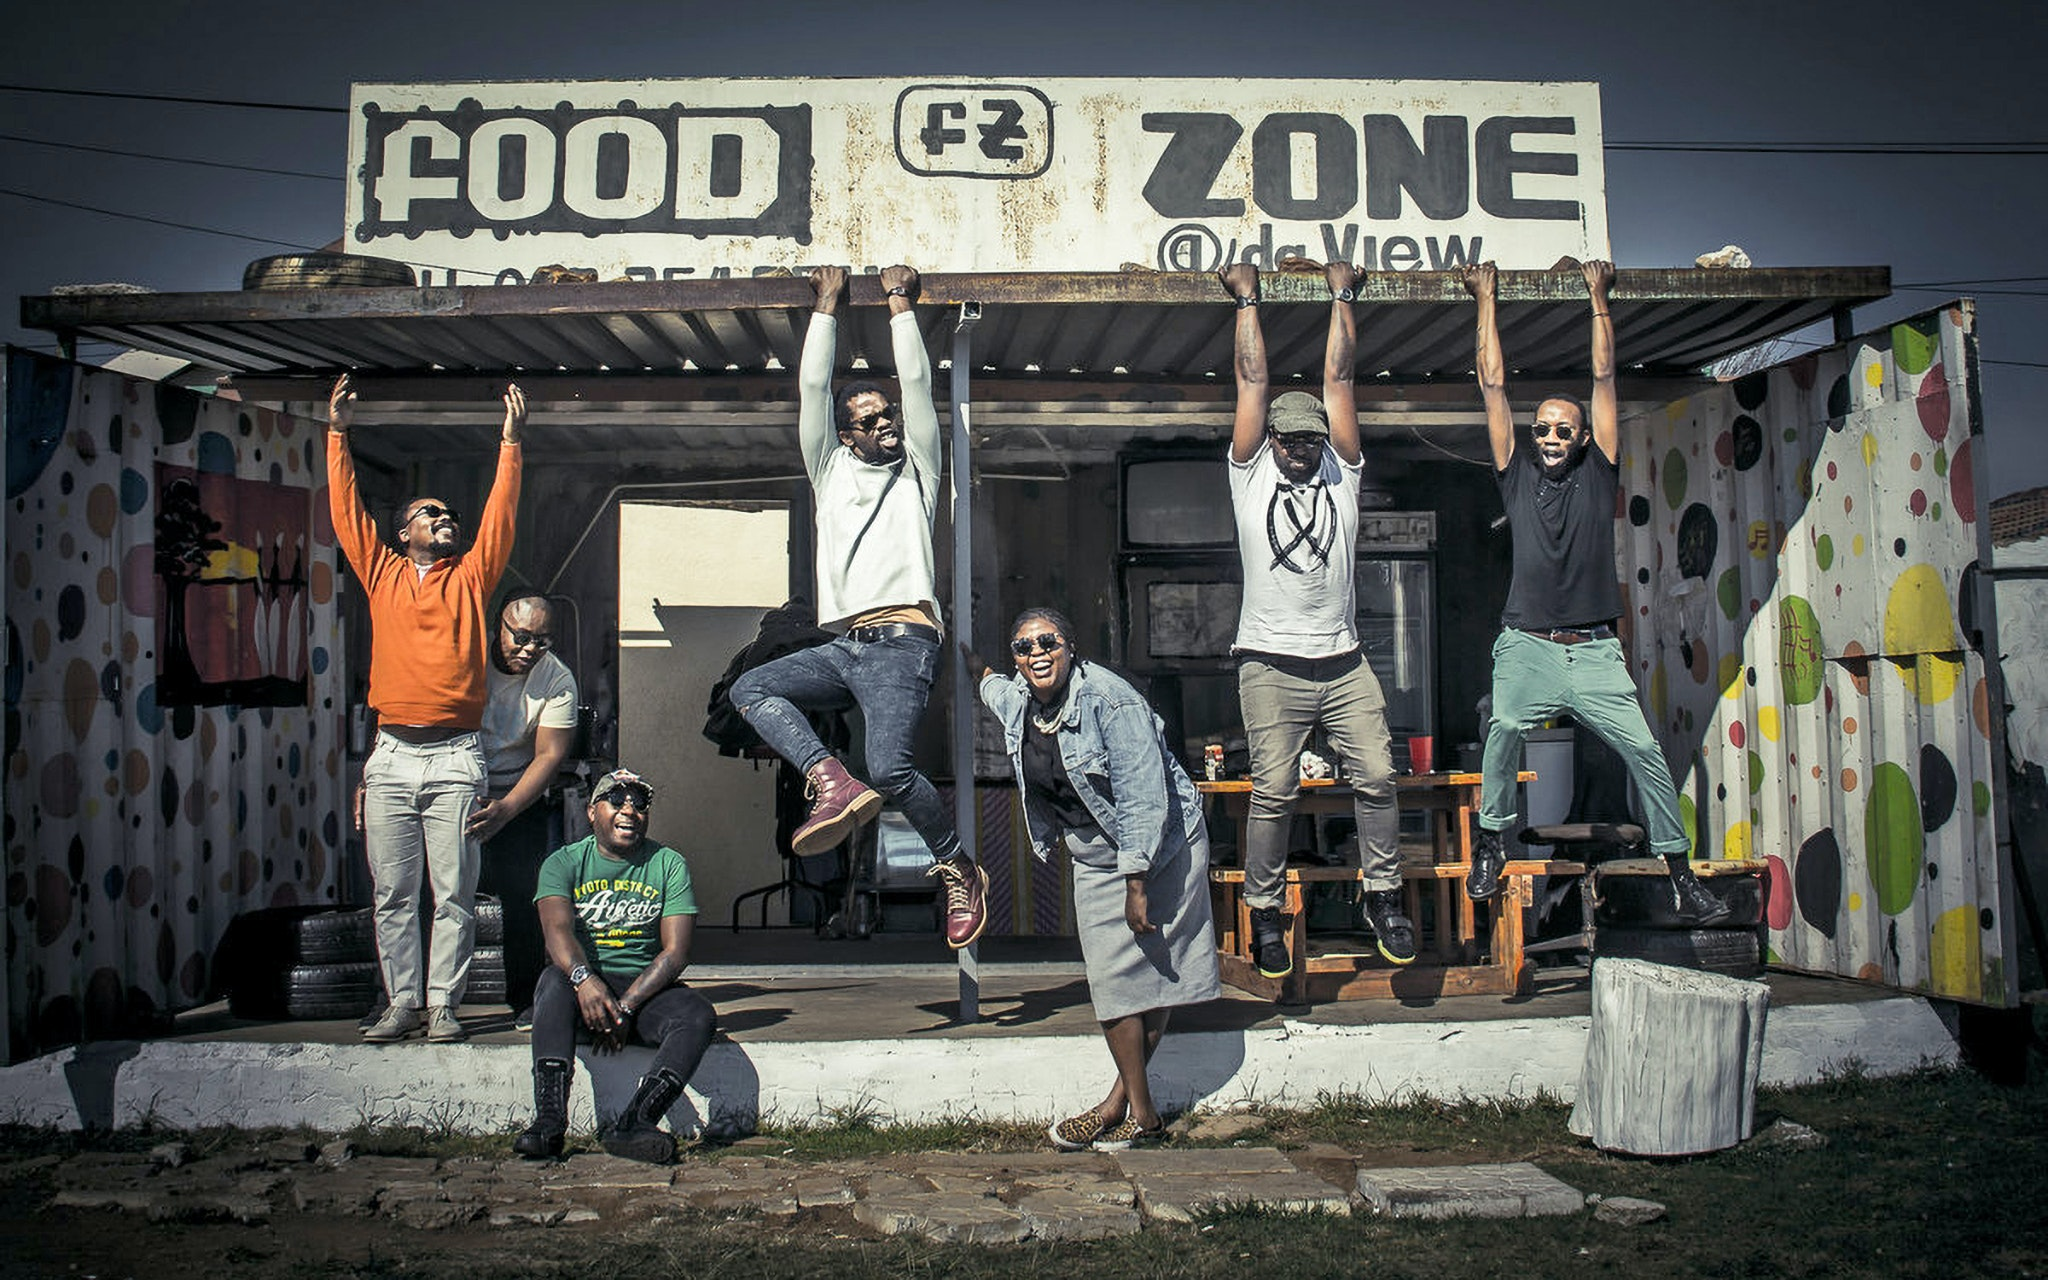 BCUC posing under a sign that says food zone.